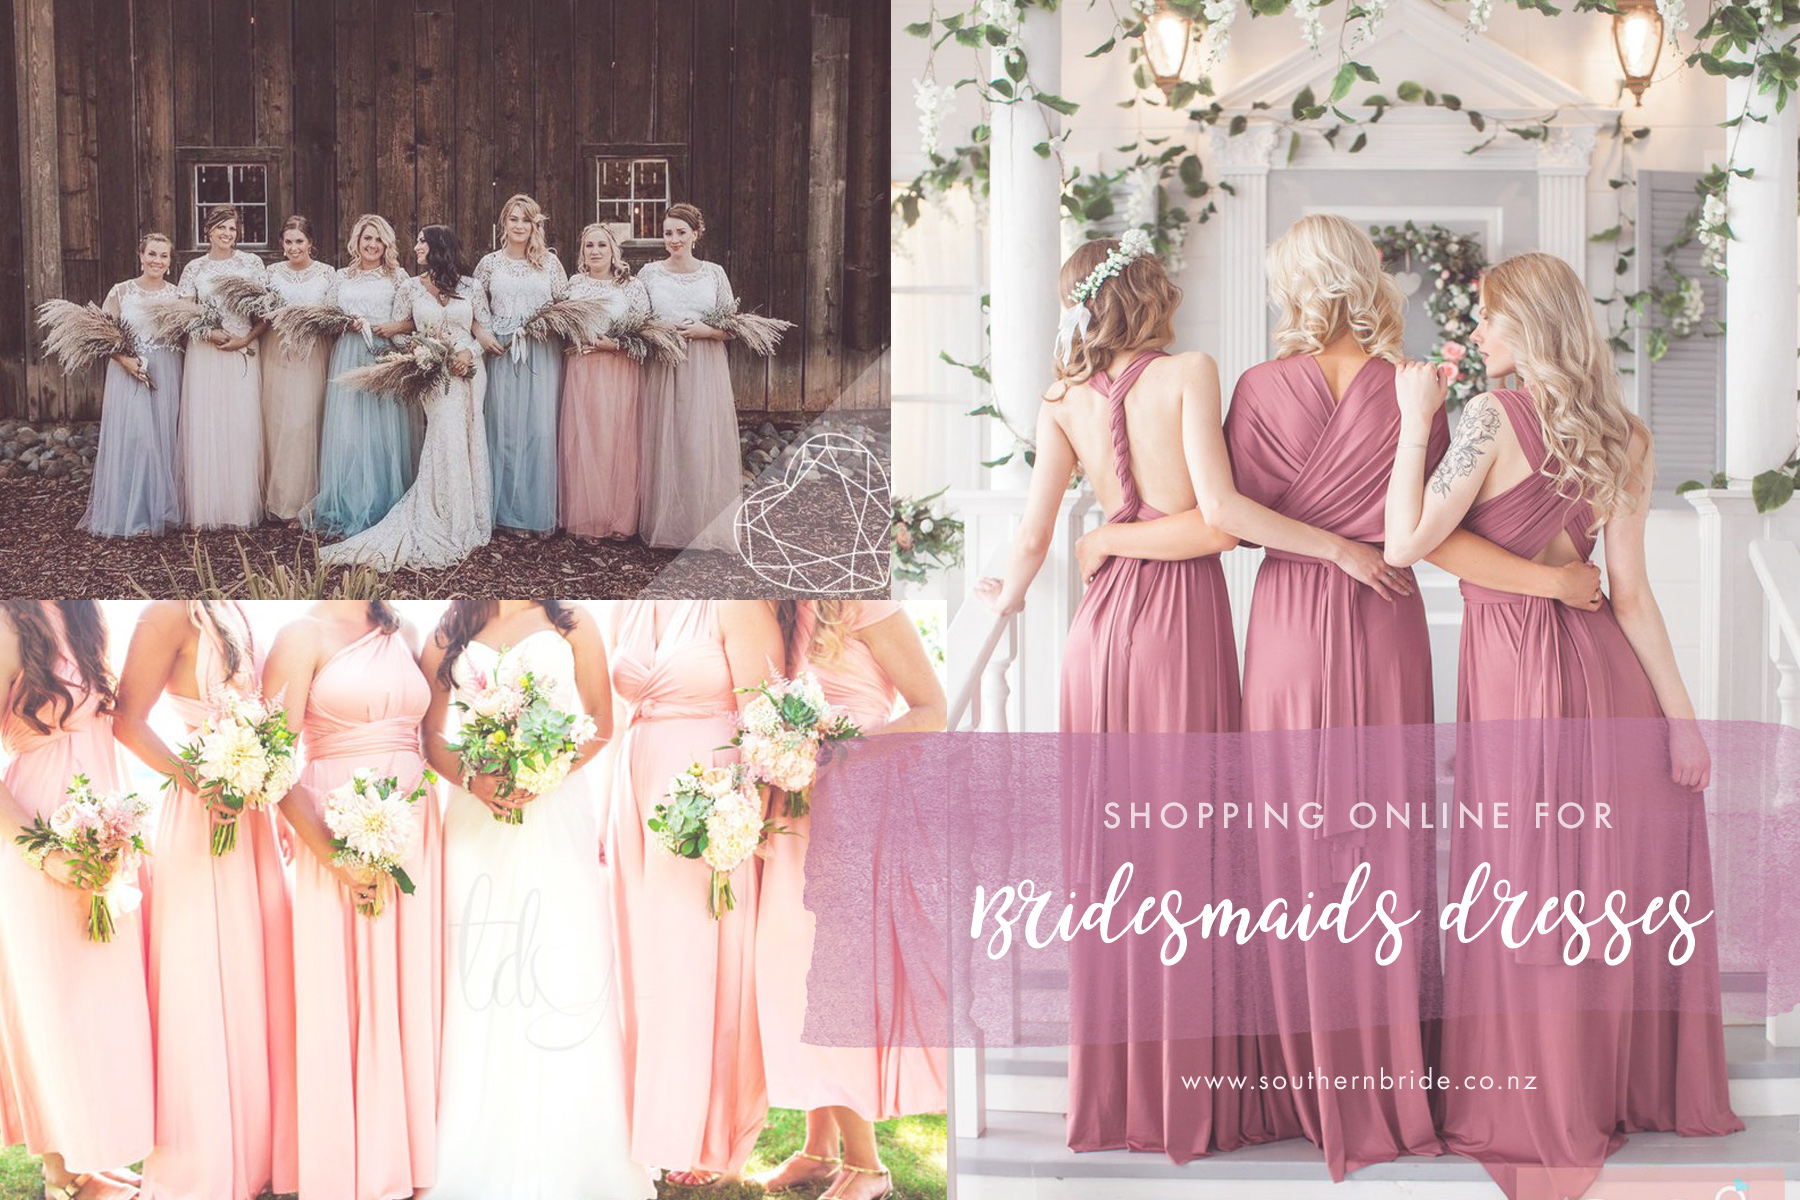 1d5cd4a17eb Online Bridesmaid Dress Shopping - Southern Bride